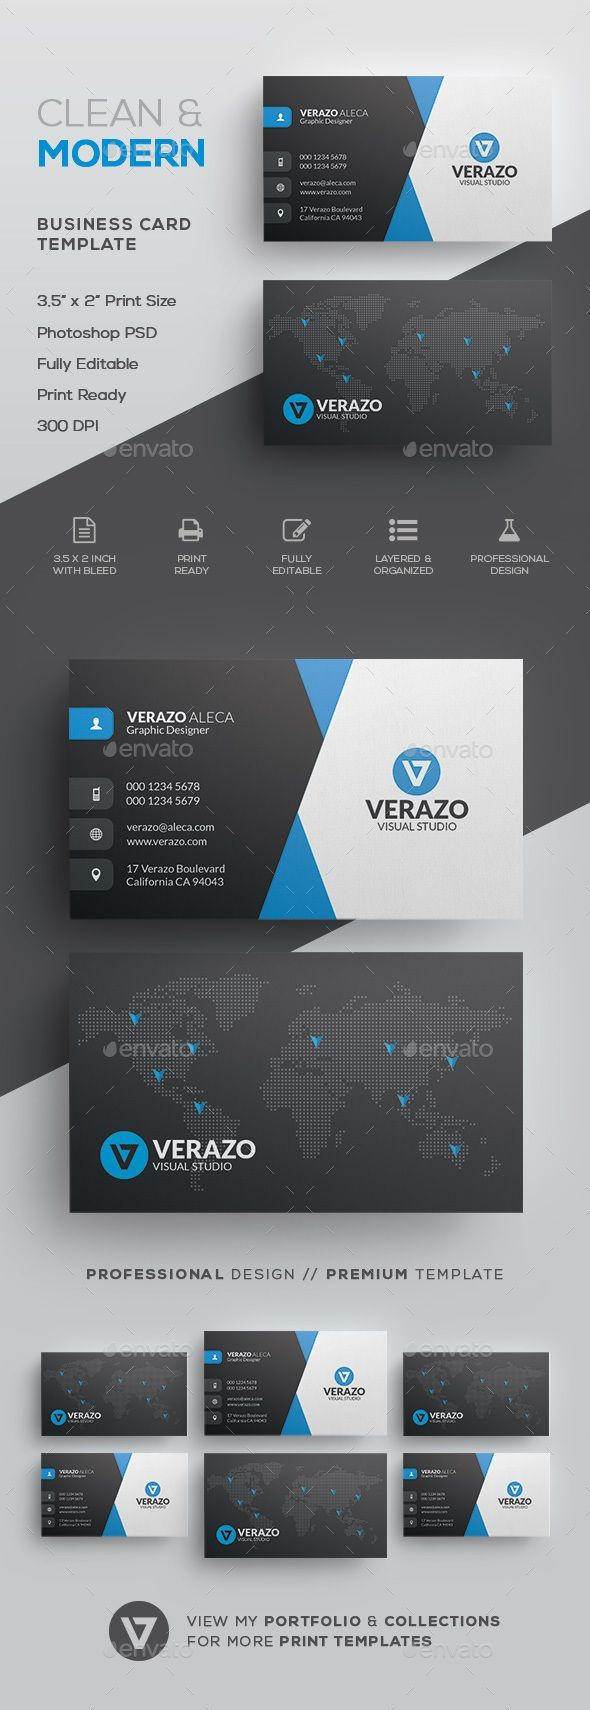 Templates business card template word online also business card templates business card template word online also business card design online free psd download in conjunction with avery business card template colourmoves